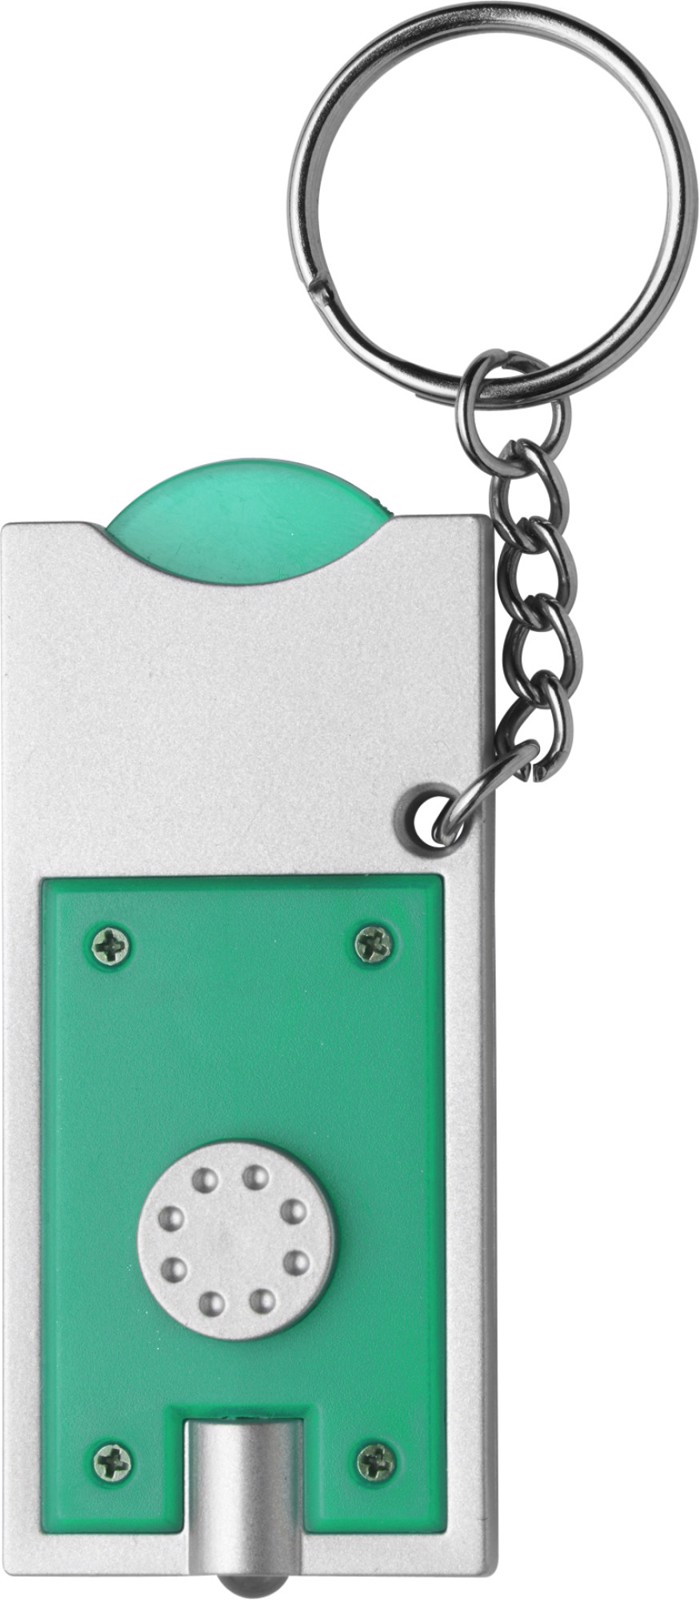 PS key holder with coin - Light Green